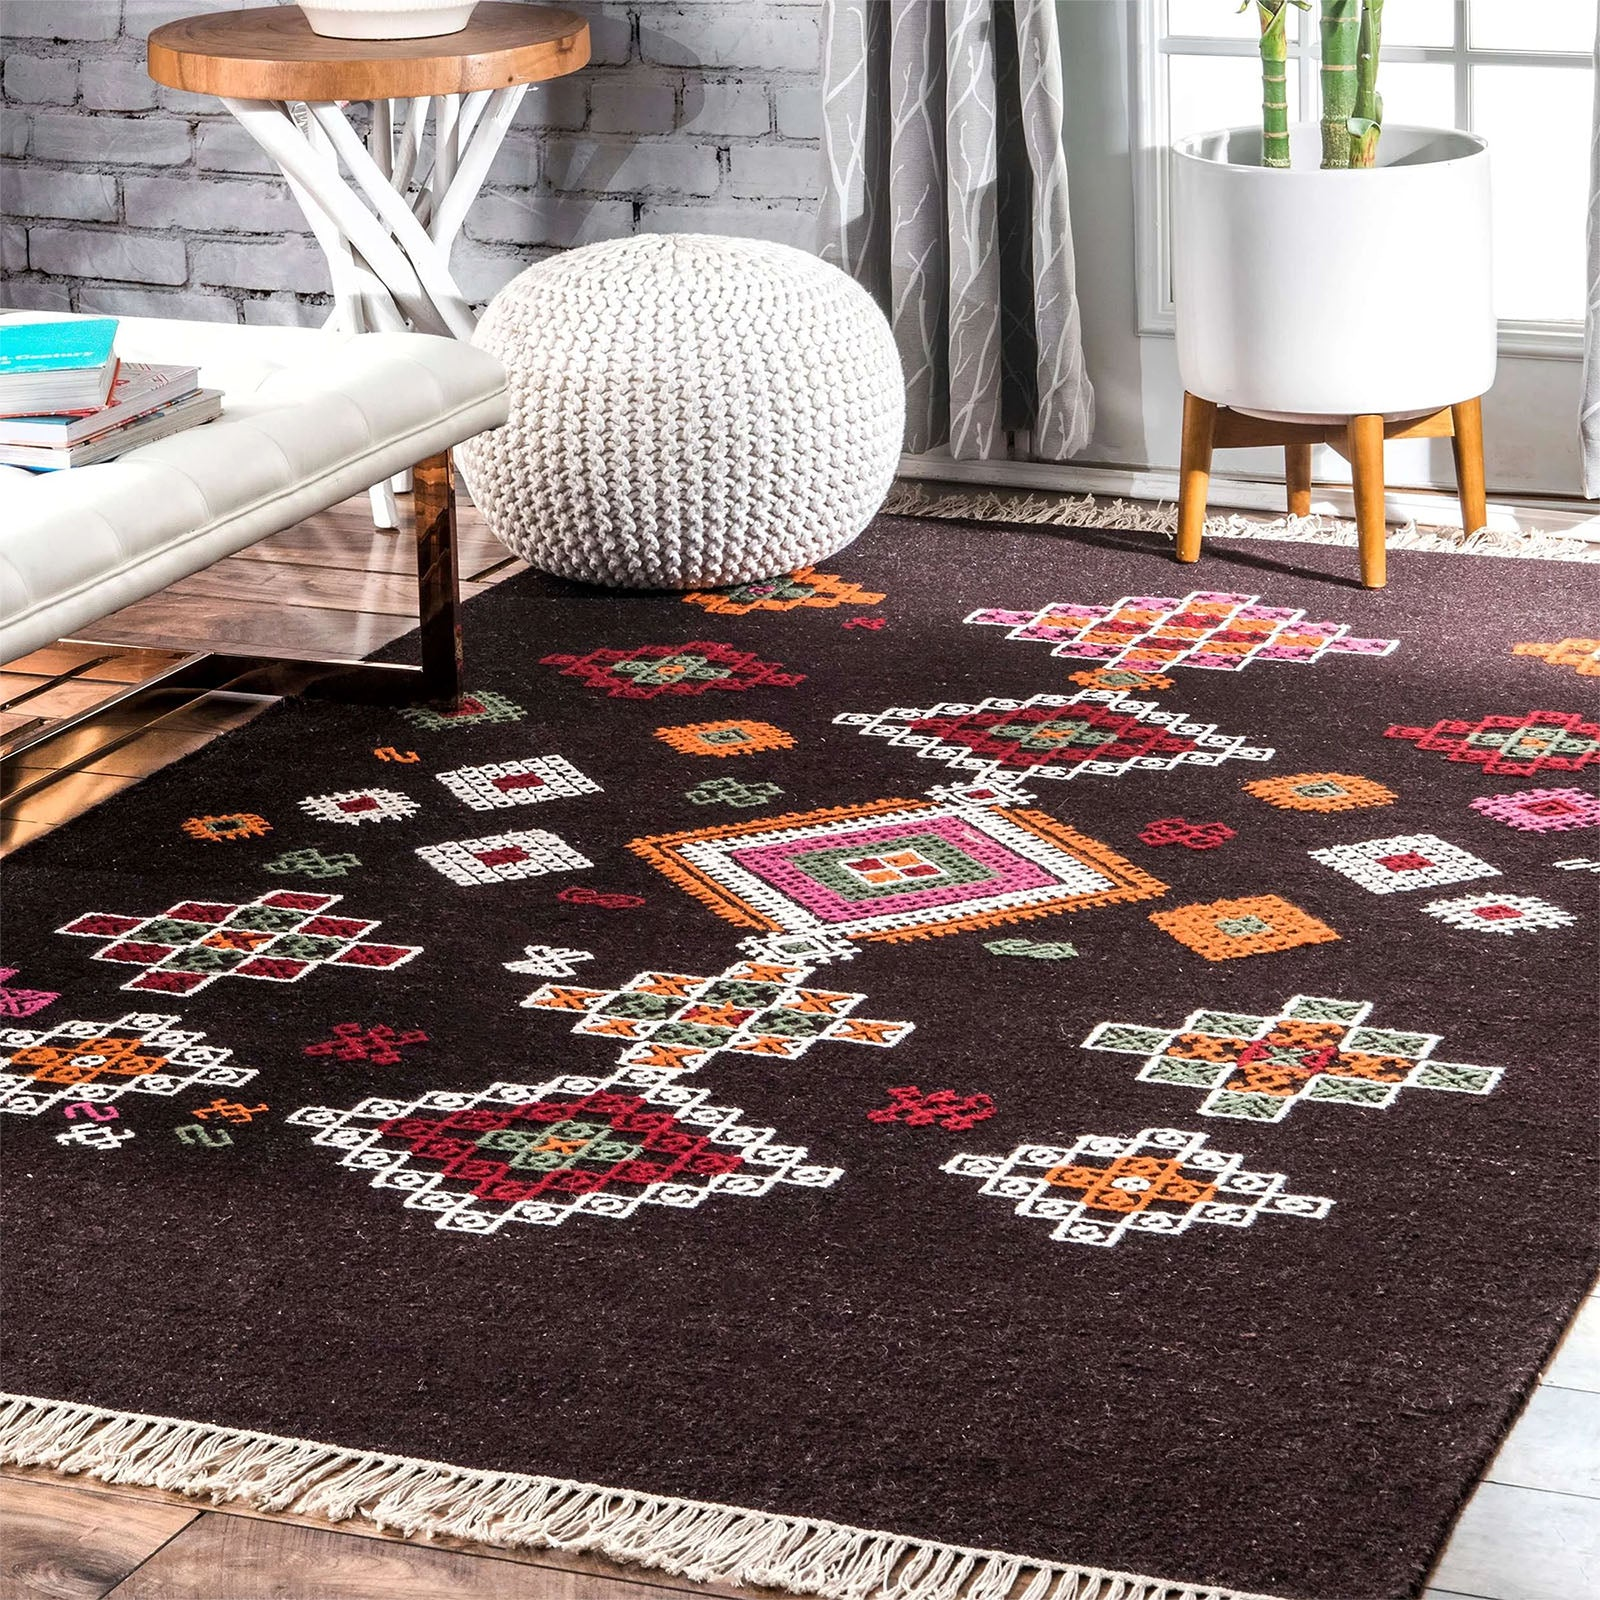 230X160  handmade rug  JH-2712-L -  230X160 سجادة يدوية الصنع - Shop Online Furniture and Home Decor Store in Dubai, UAE at ebarza